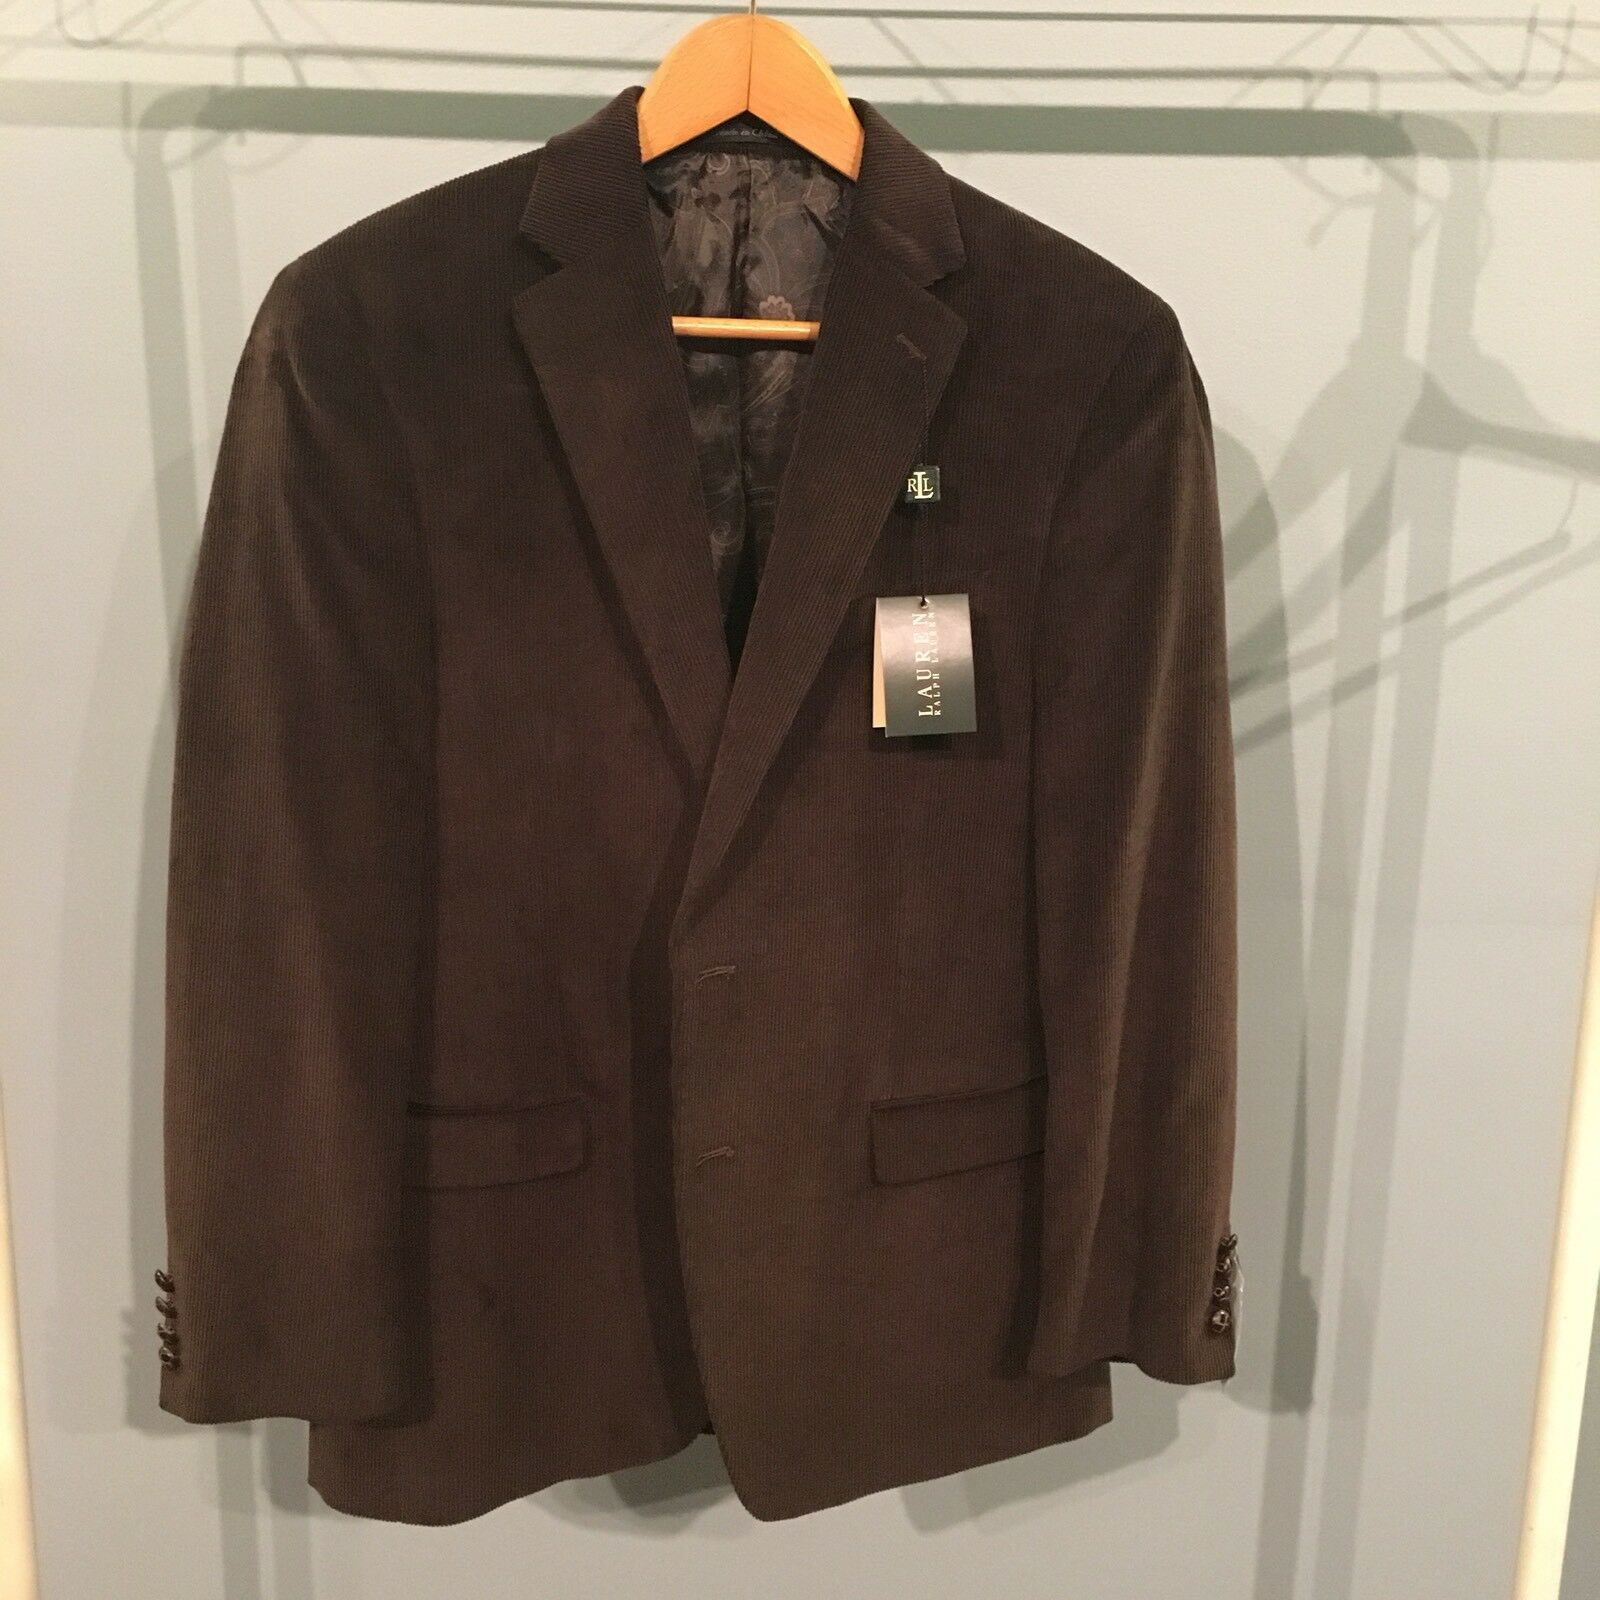 Ralph Lauren Polo Corduroy Blazer Sport Coat Brown 40R NEW WITH TAGS MENS